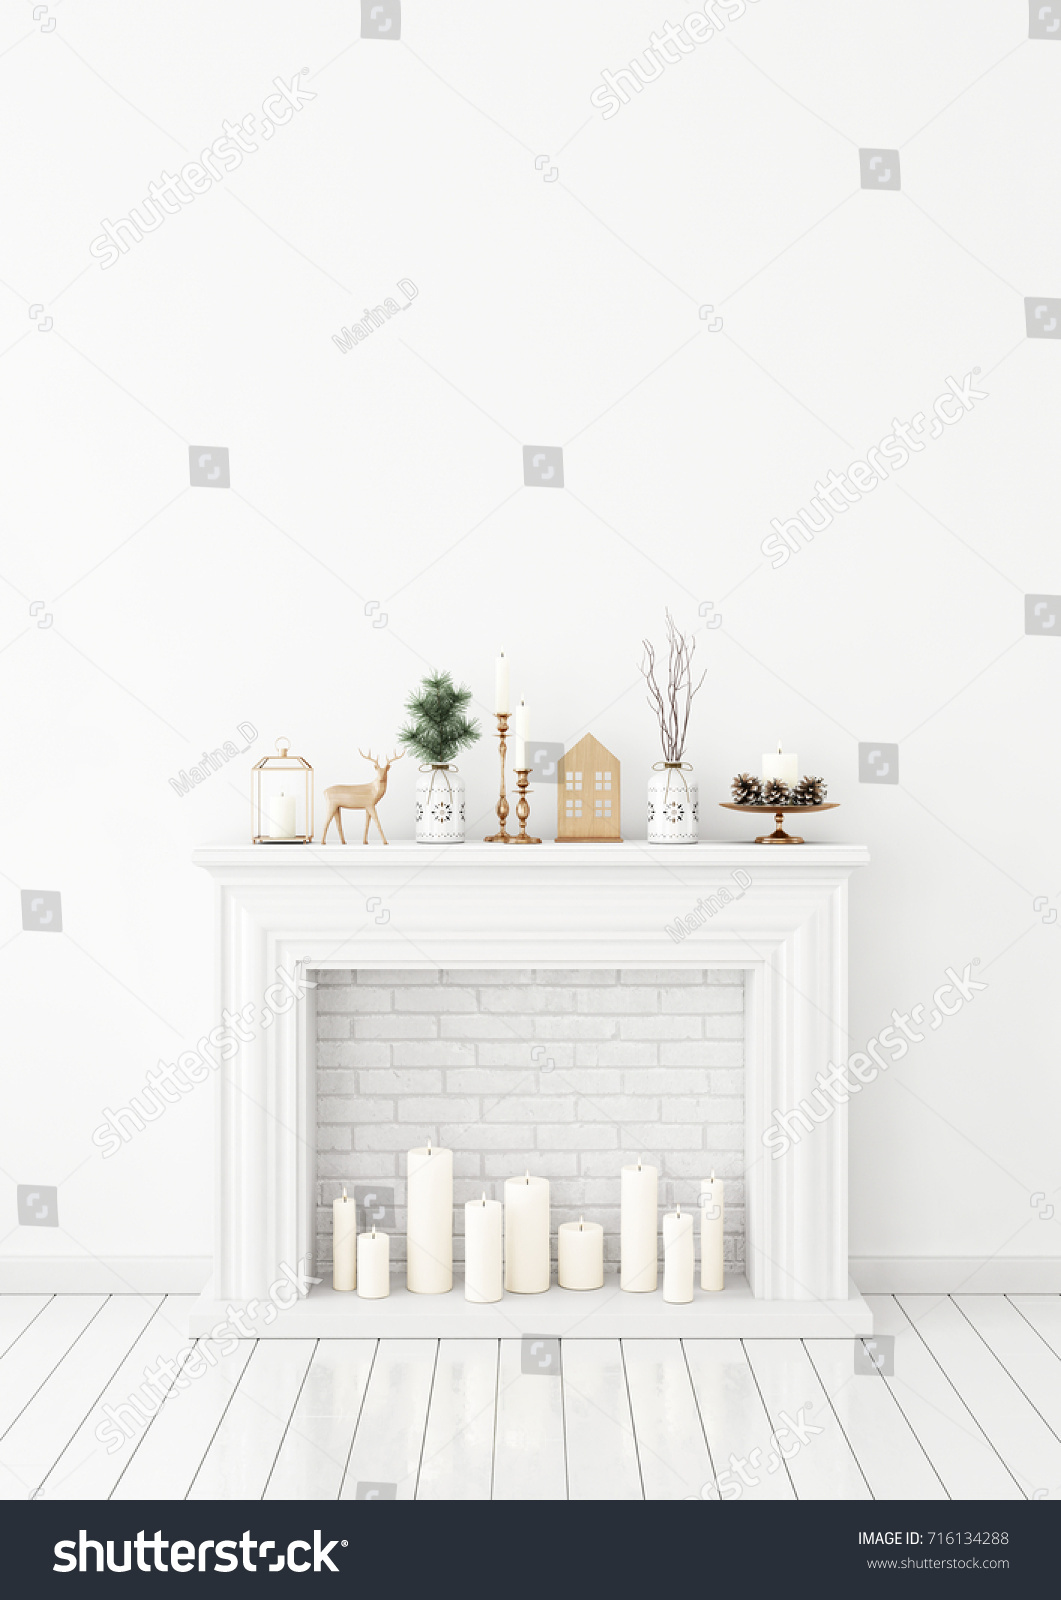 winter livingroom interior candle fireplace christmas stock